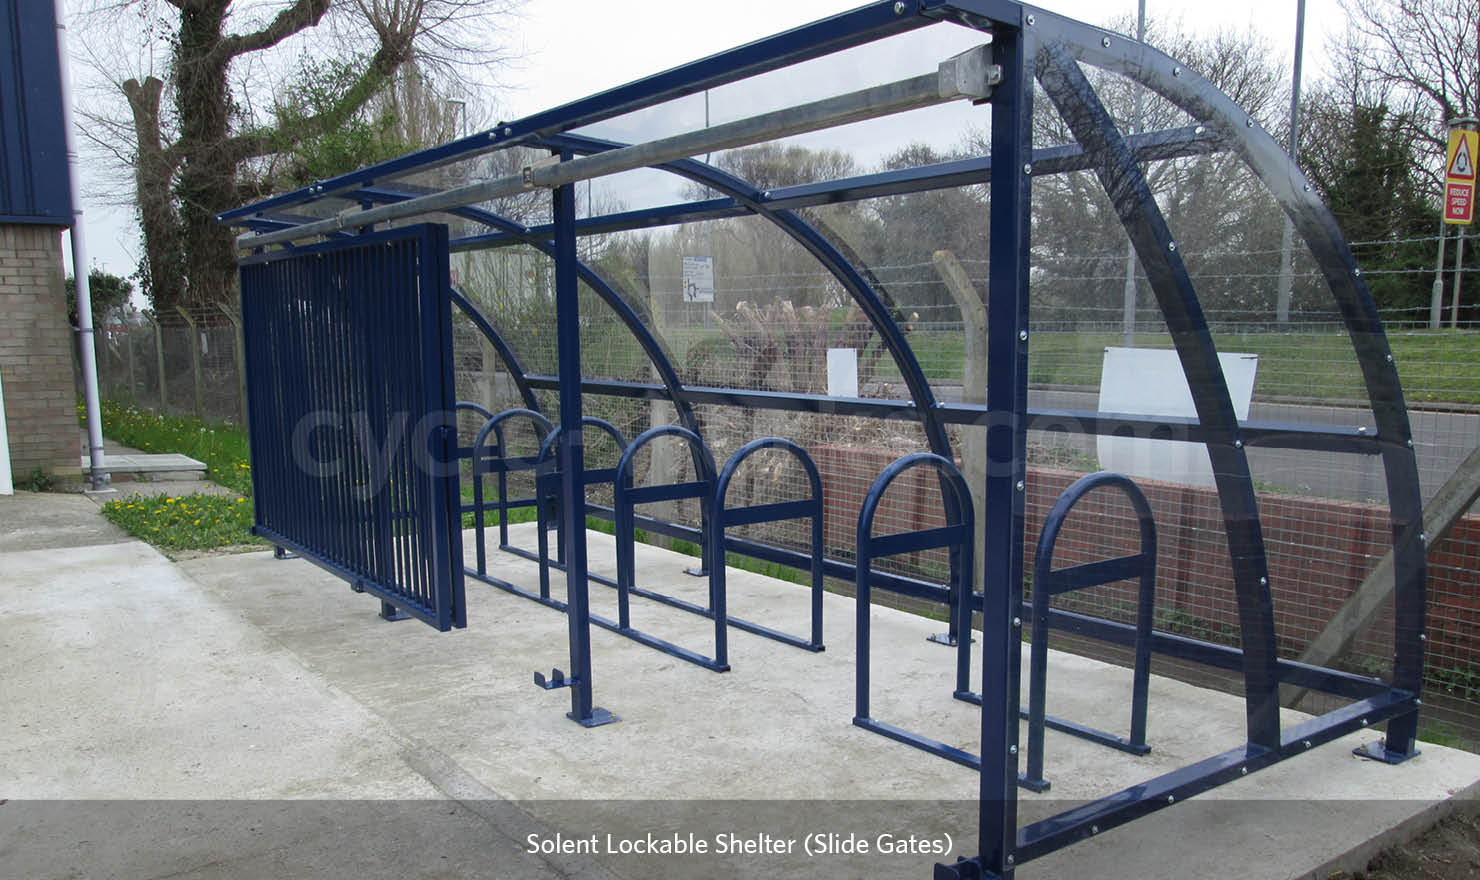 External Bike Shelter with lockable gates